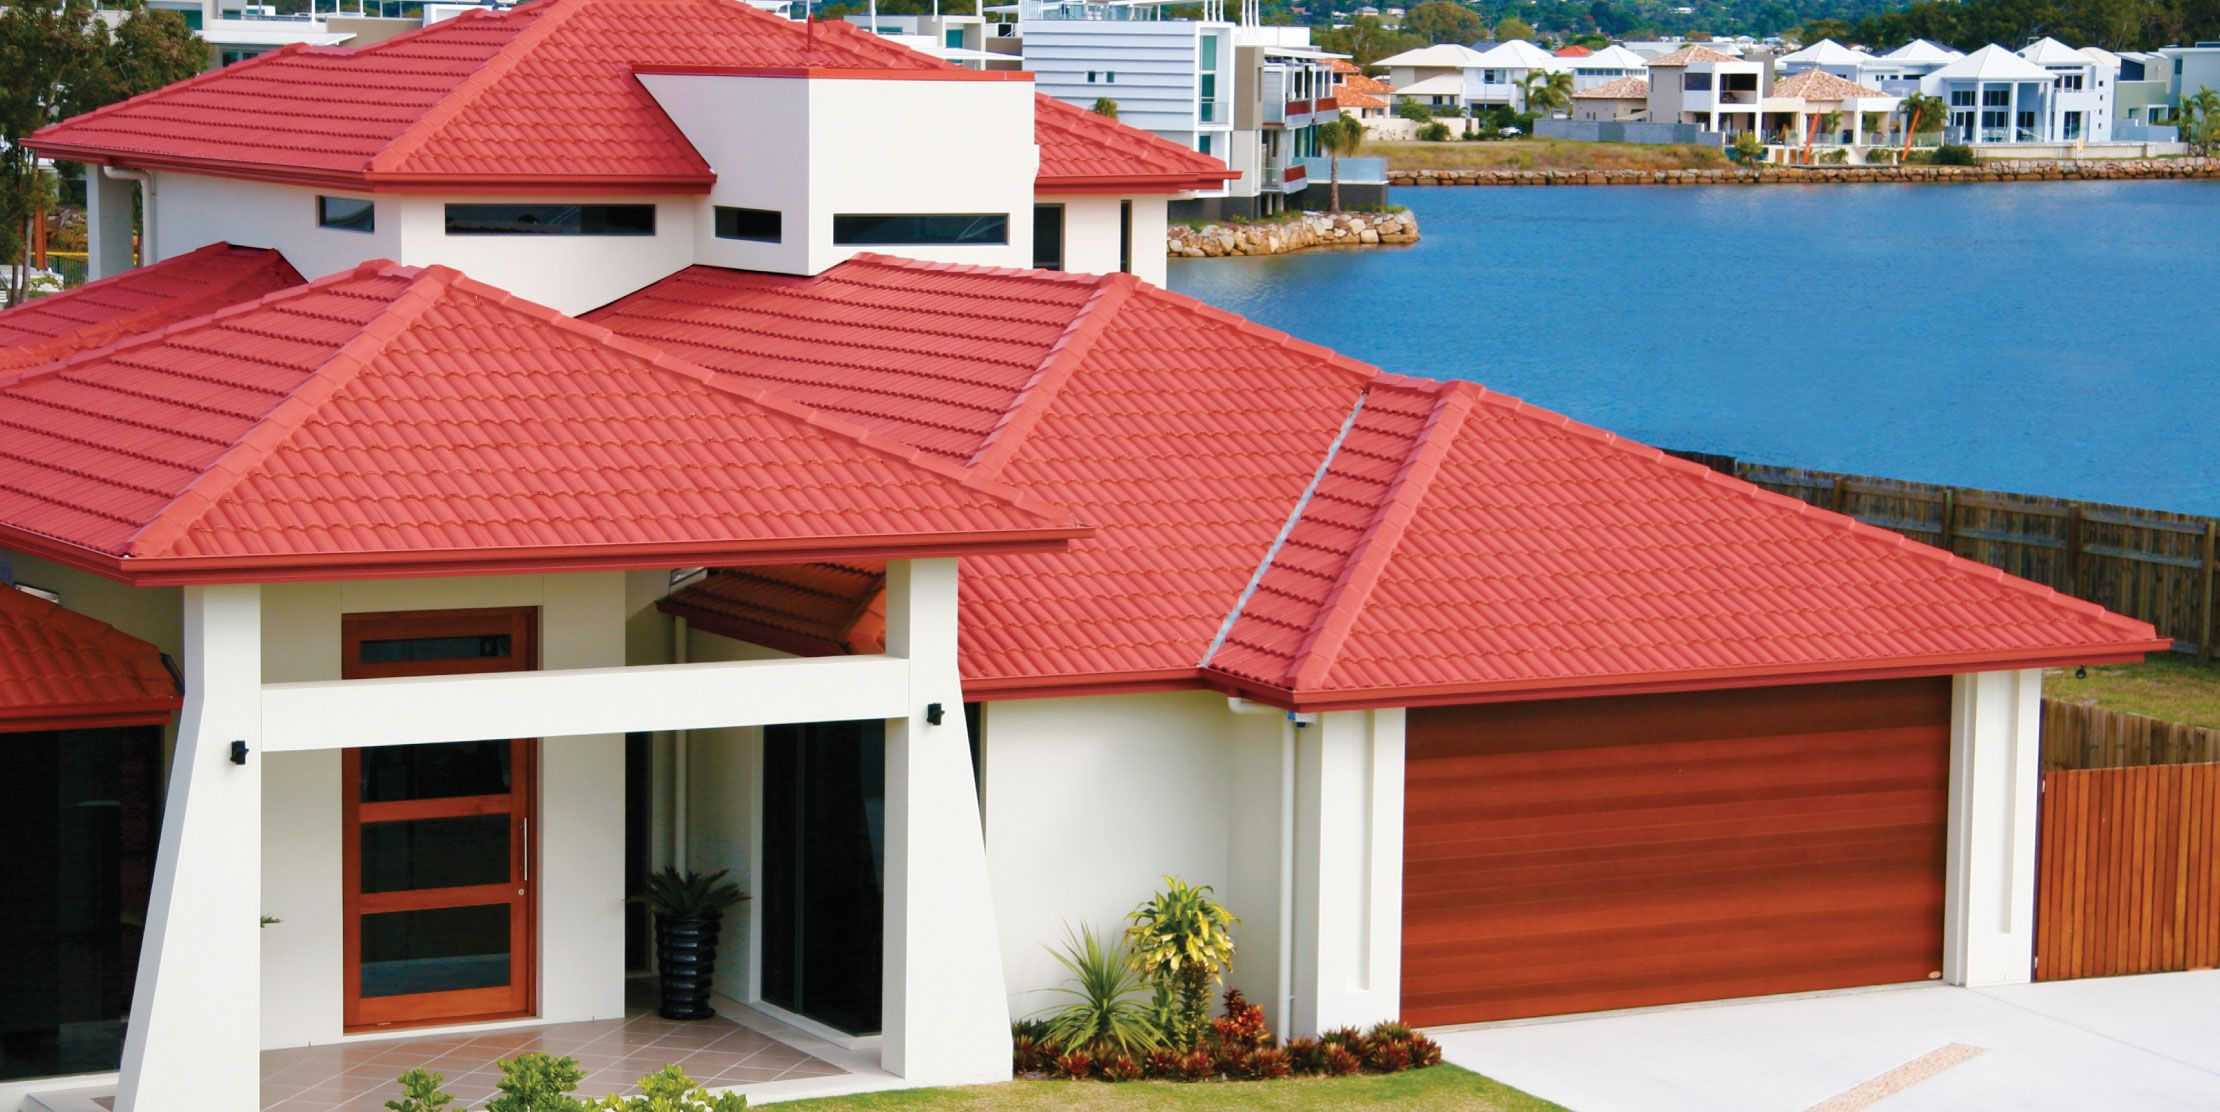 How To Find The Best Reliable And Affordable Commercial Roof Repairs In Manchester Uk Homes Story House Roofing Companies